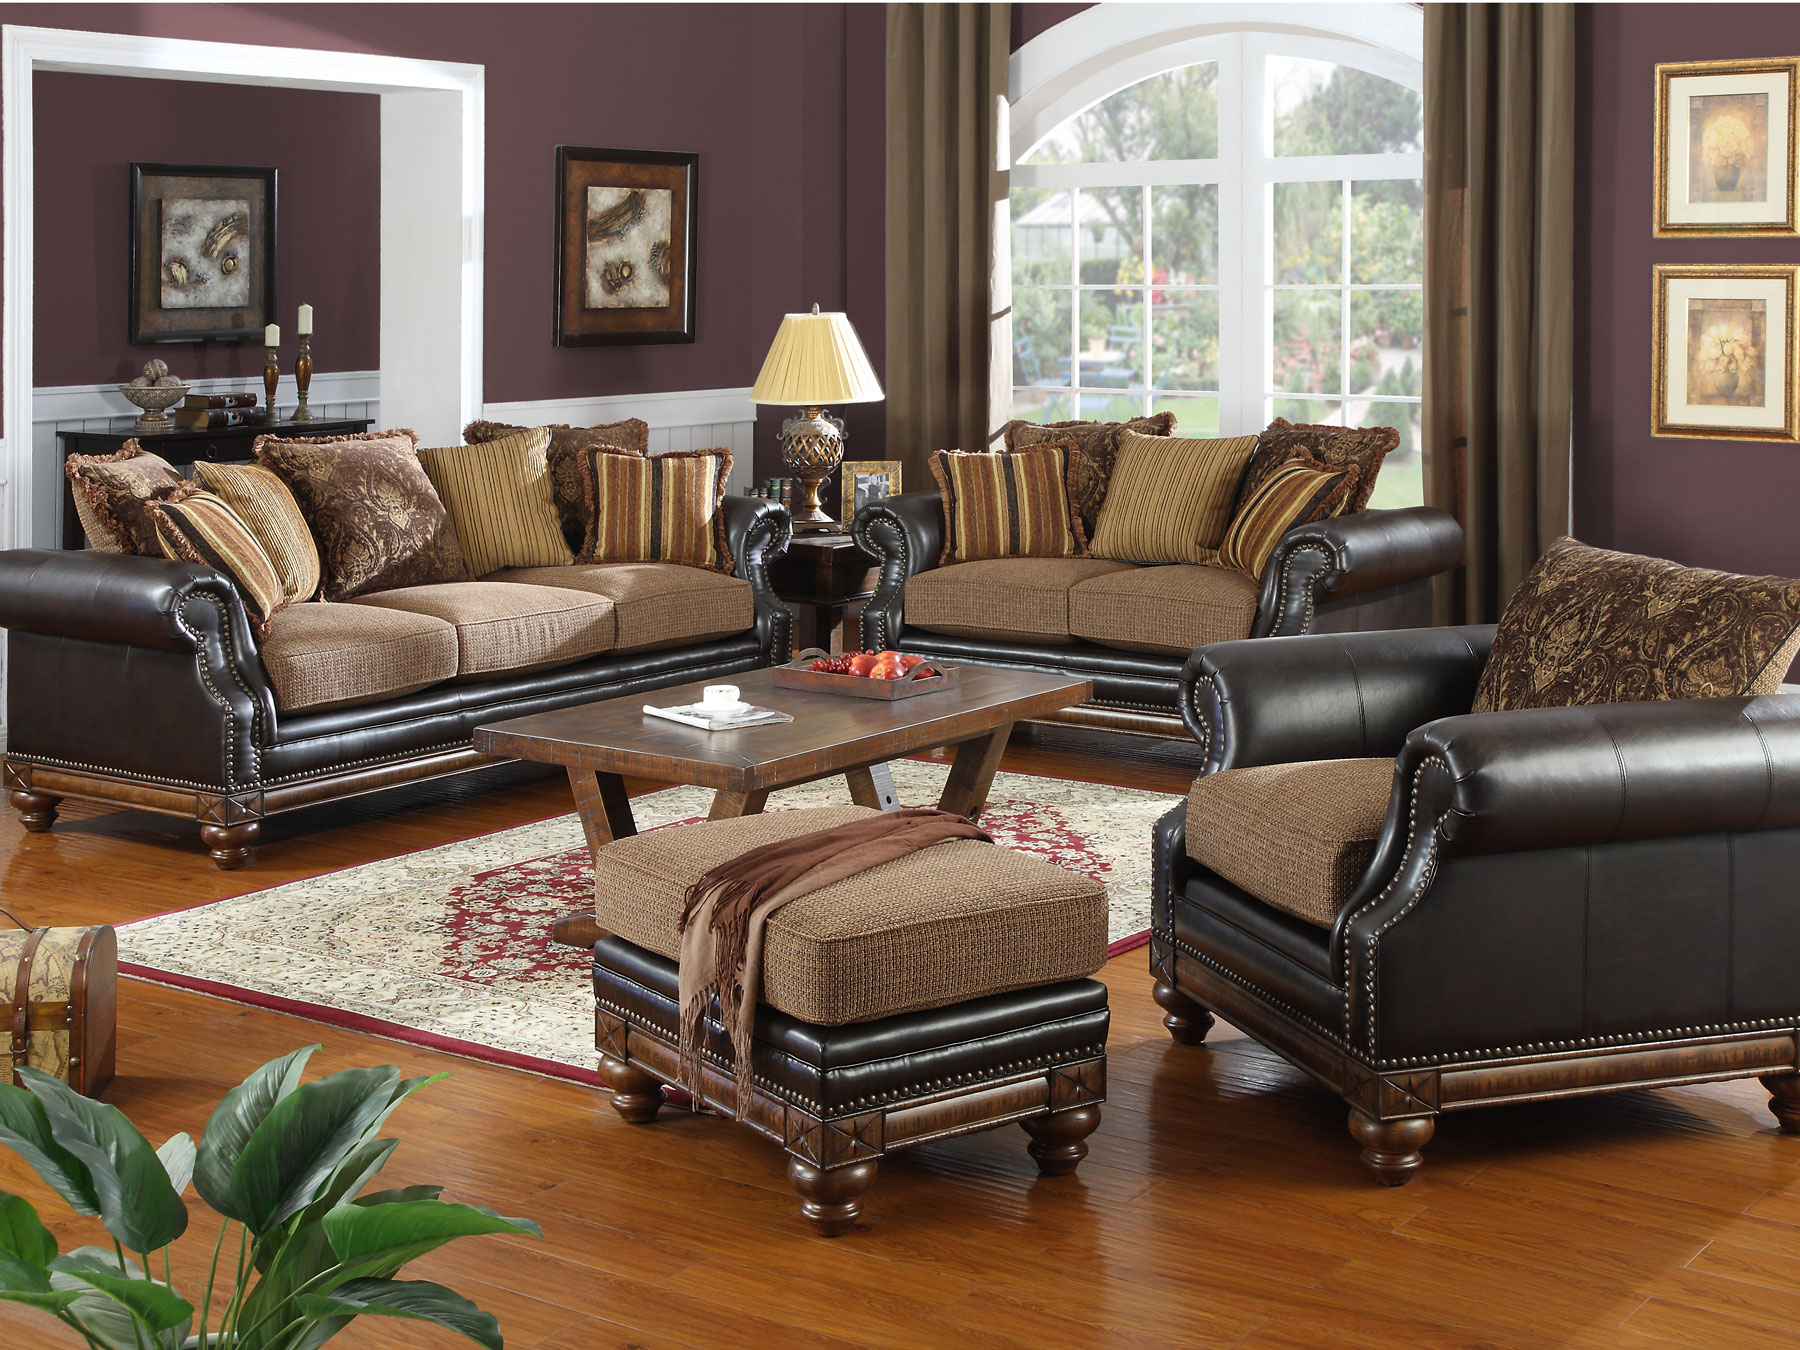 Complete Living Room Sets Buy Silver Mattressxpressco with regard to Cheap Living Room Sets For Sale